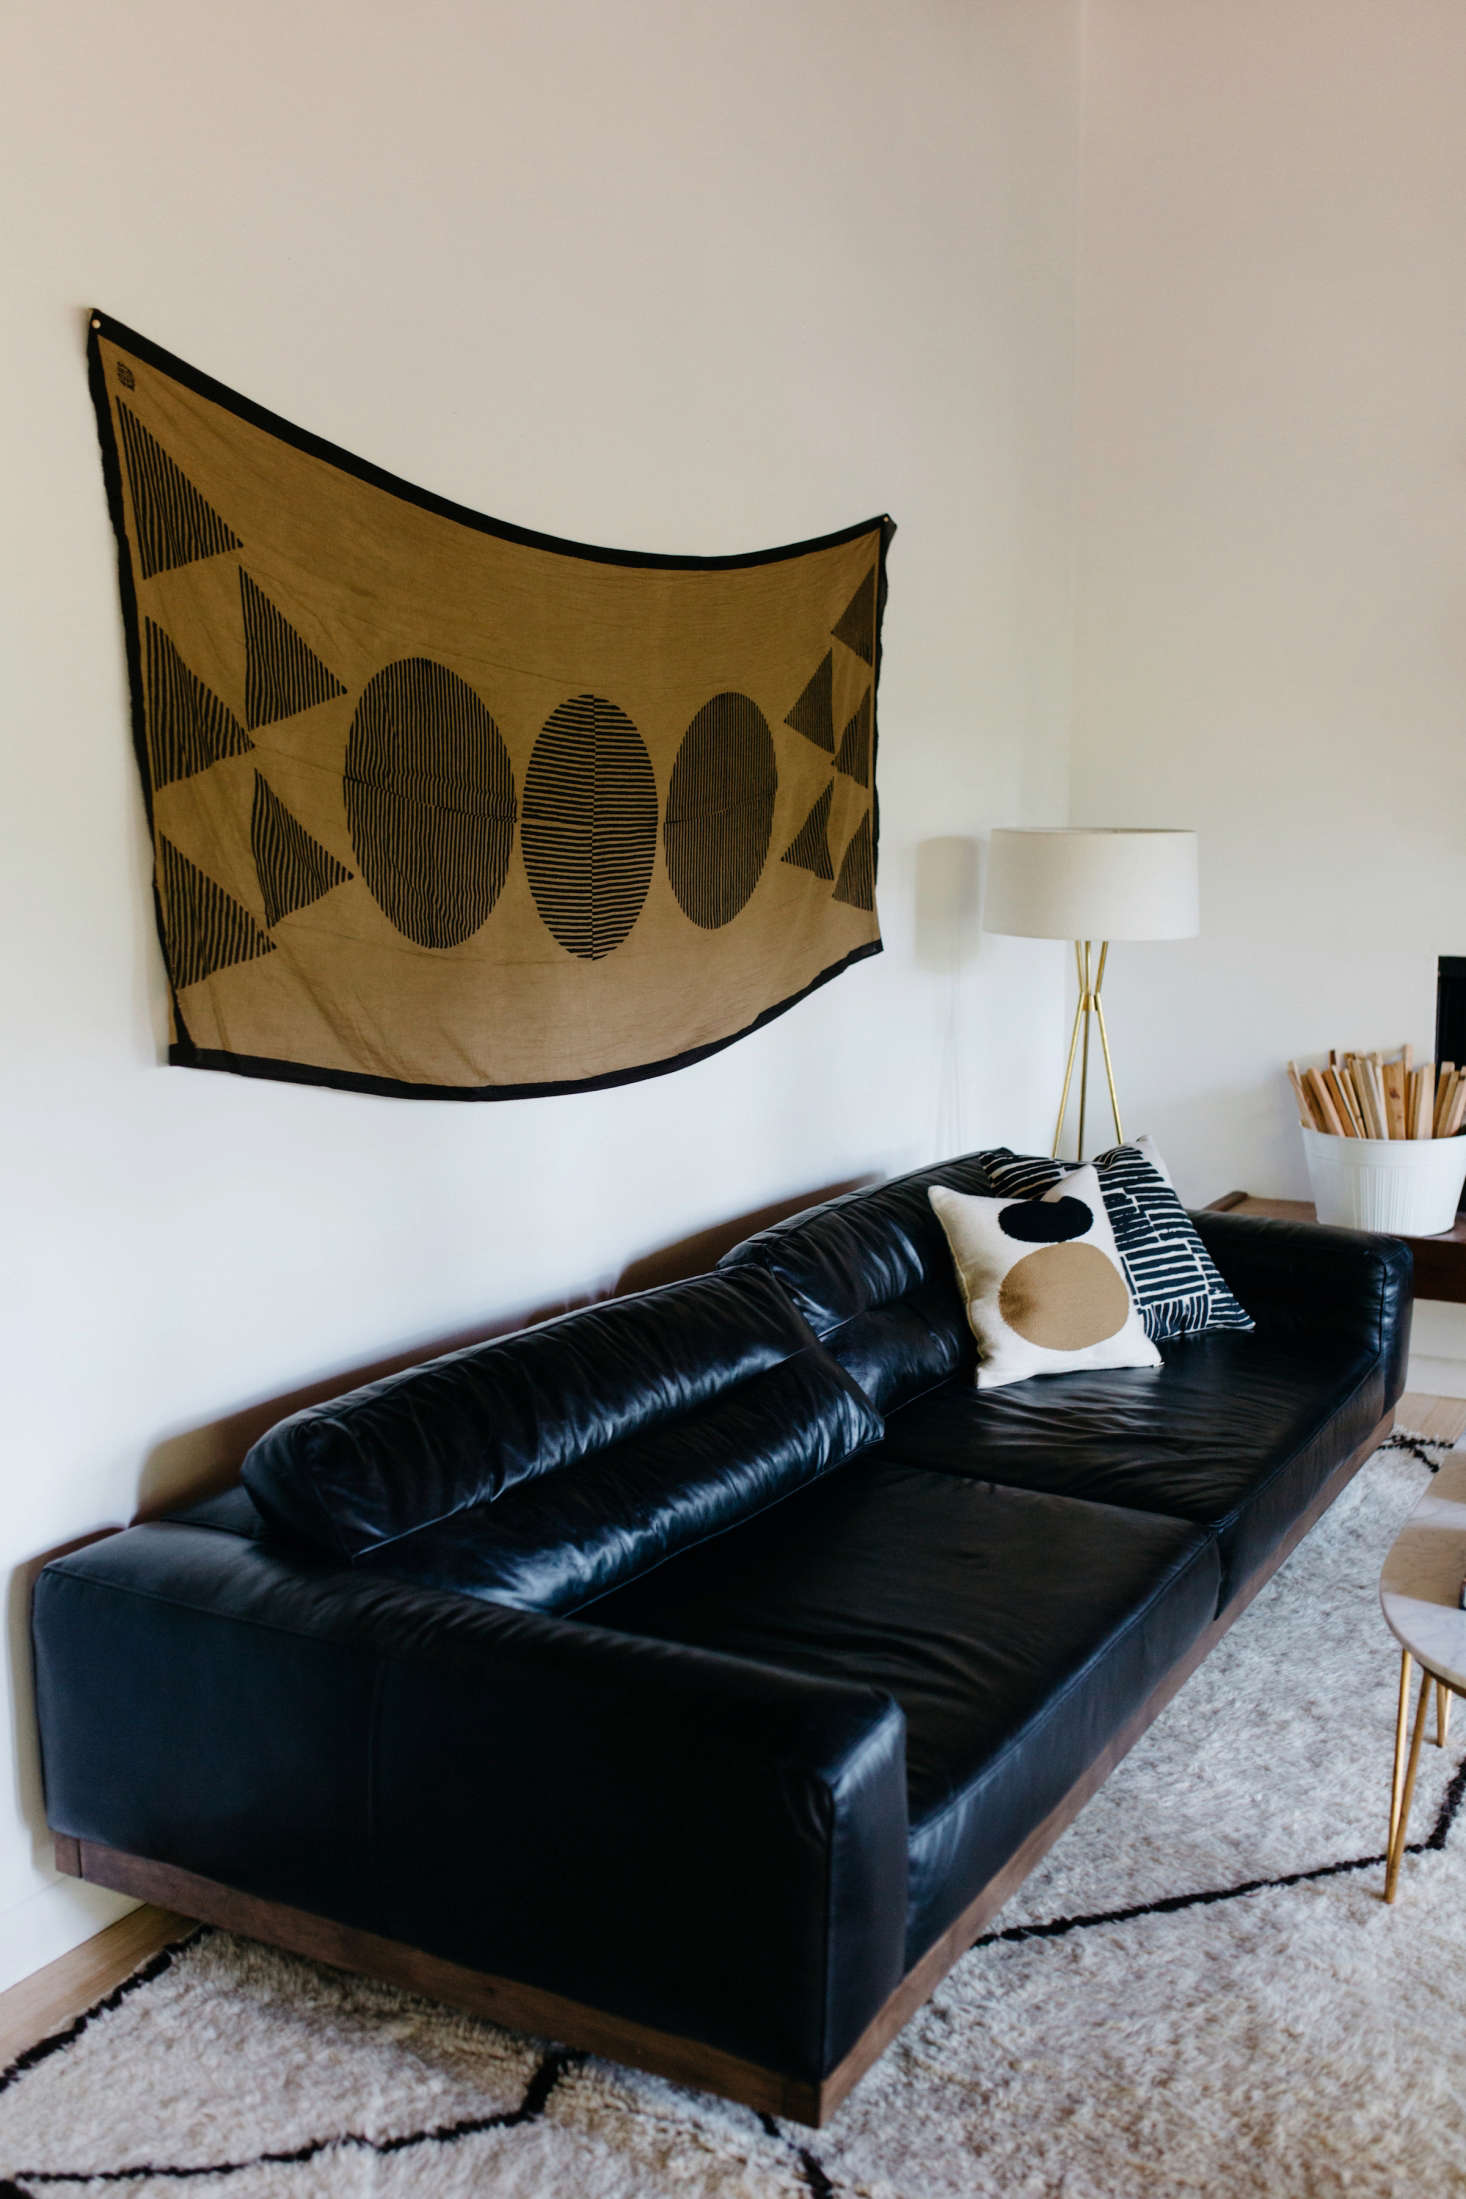 ATemple print from Block Shop Textileshangs above theblack leather sofa from Four Hands.